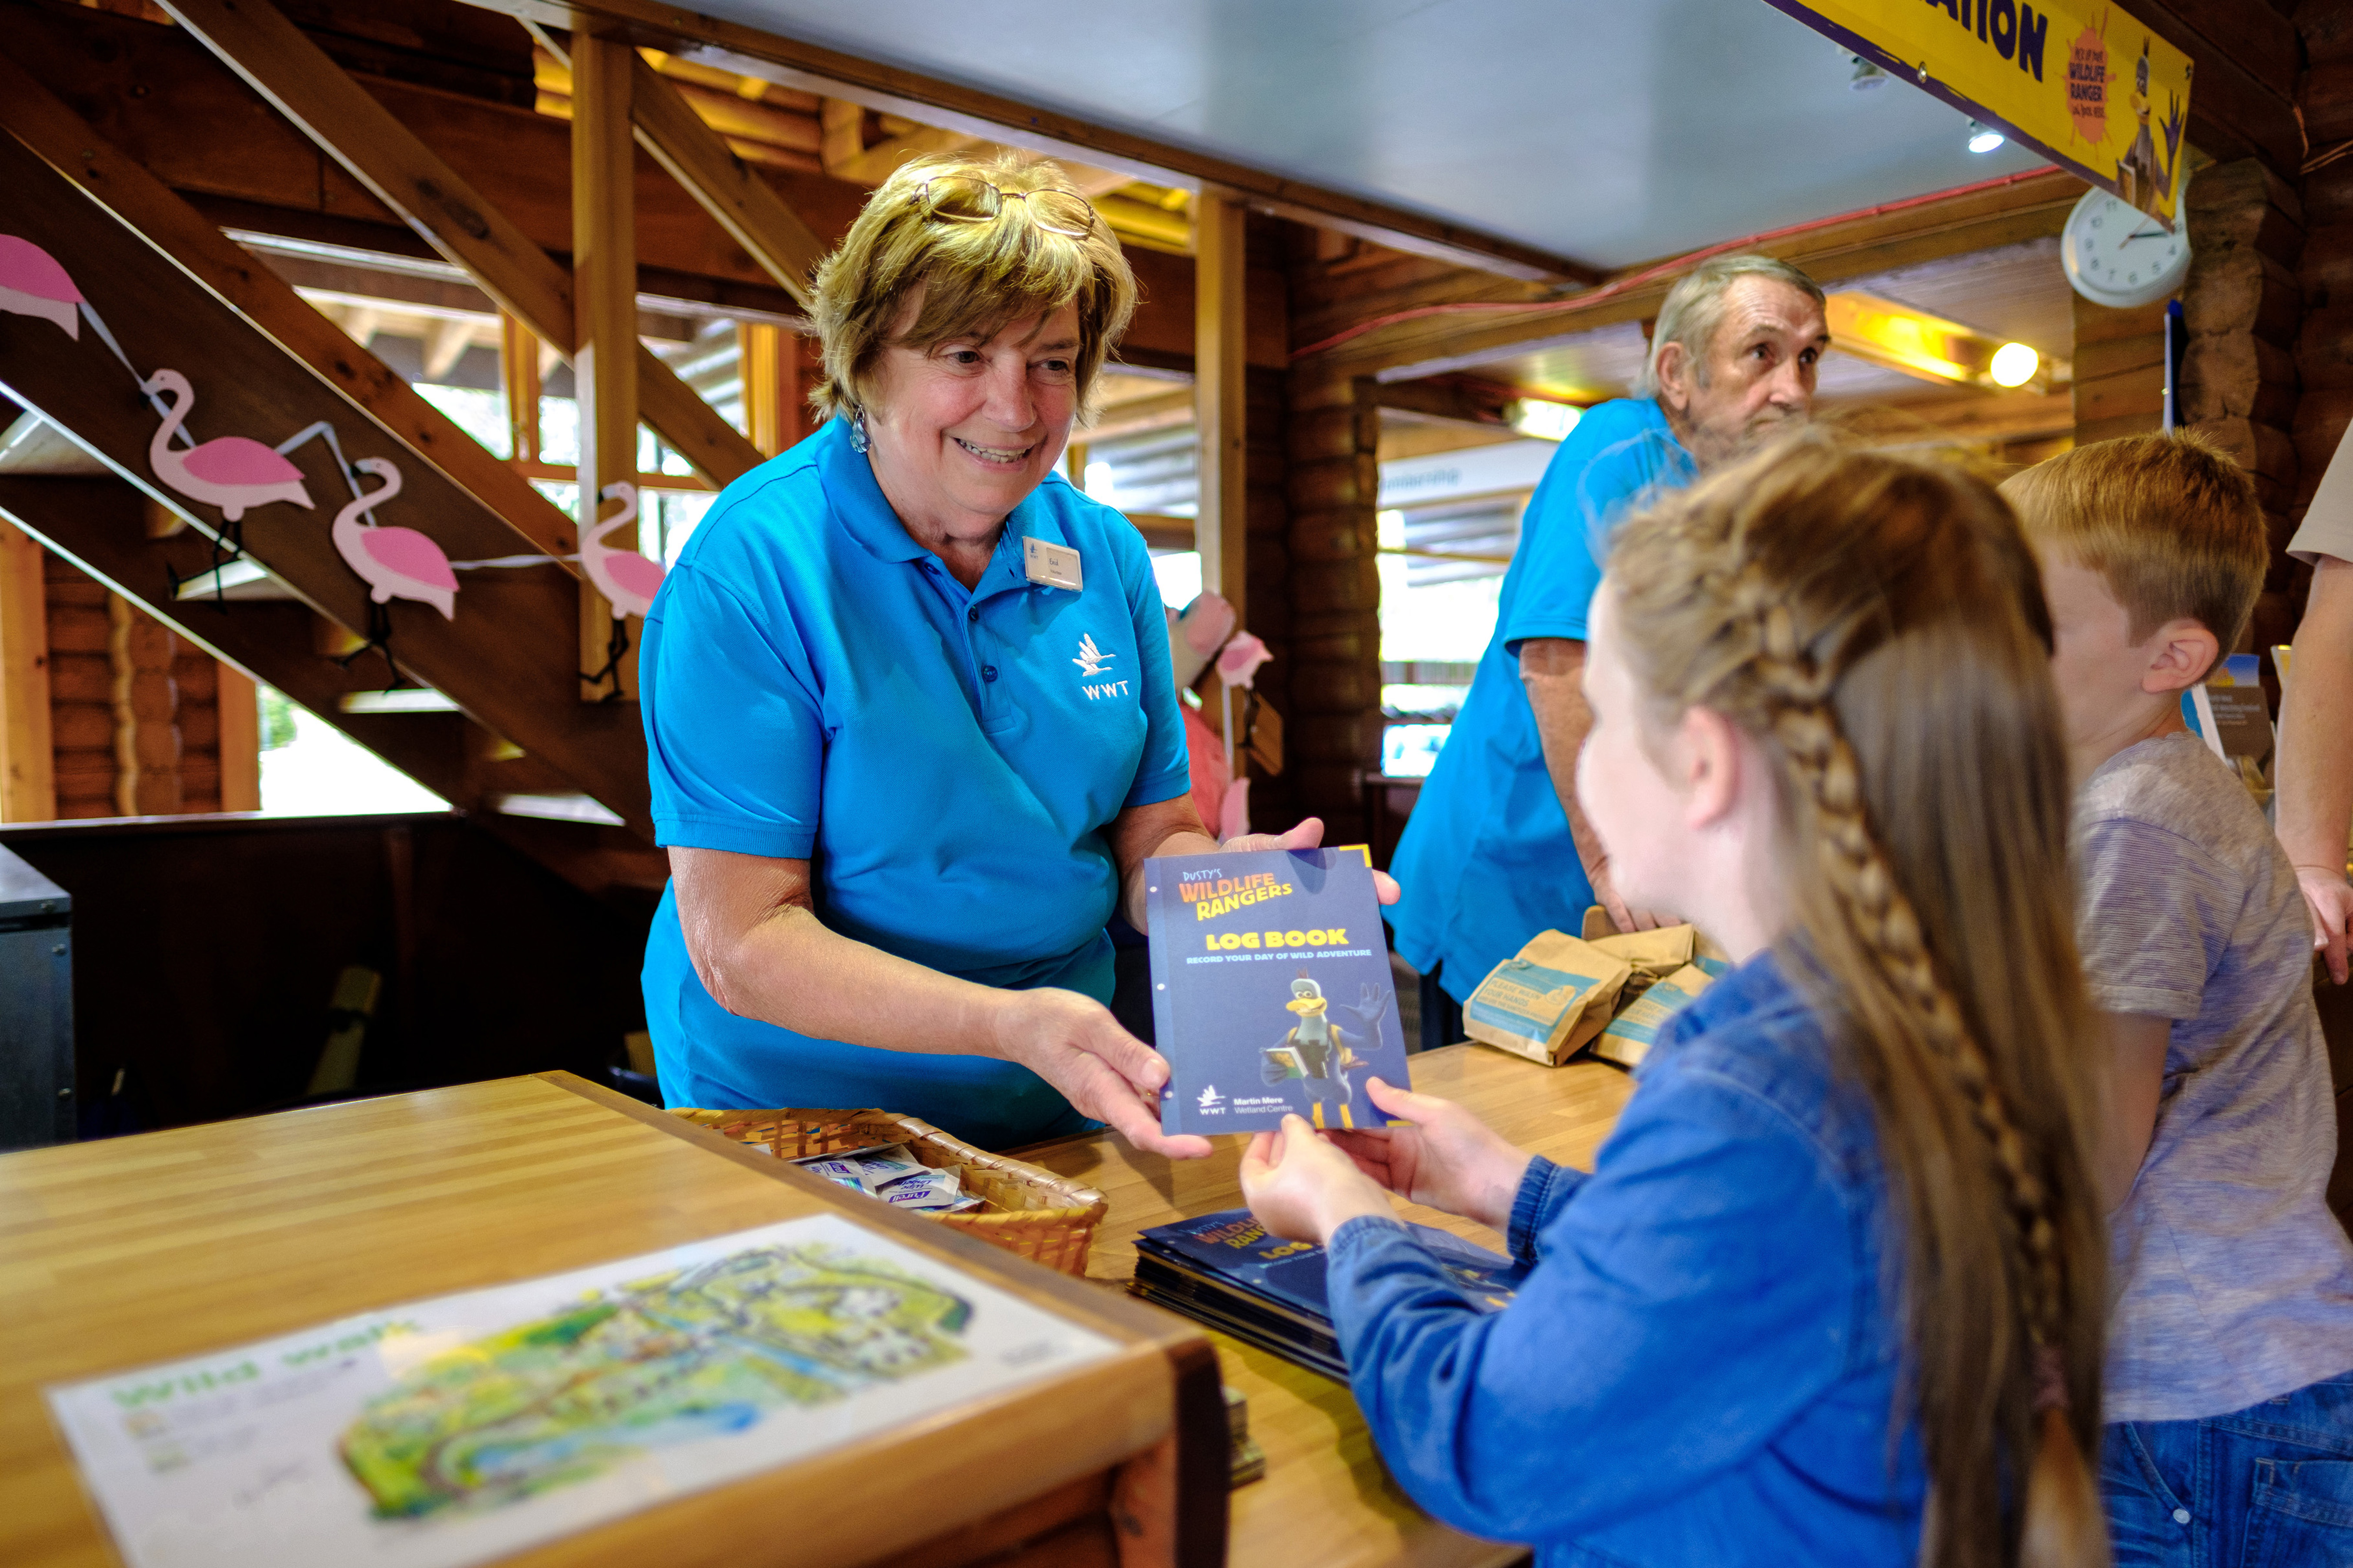 WWT Martin Mere Wetland Centre is looking for enthusiastic volunteers of all ages to come and join our welcome and visitor activity teams        The welcome team meets and greets all of our visitors, giving out day planners and centre information, as well as doing the otter talk and feed, white...